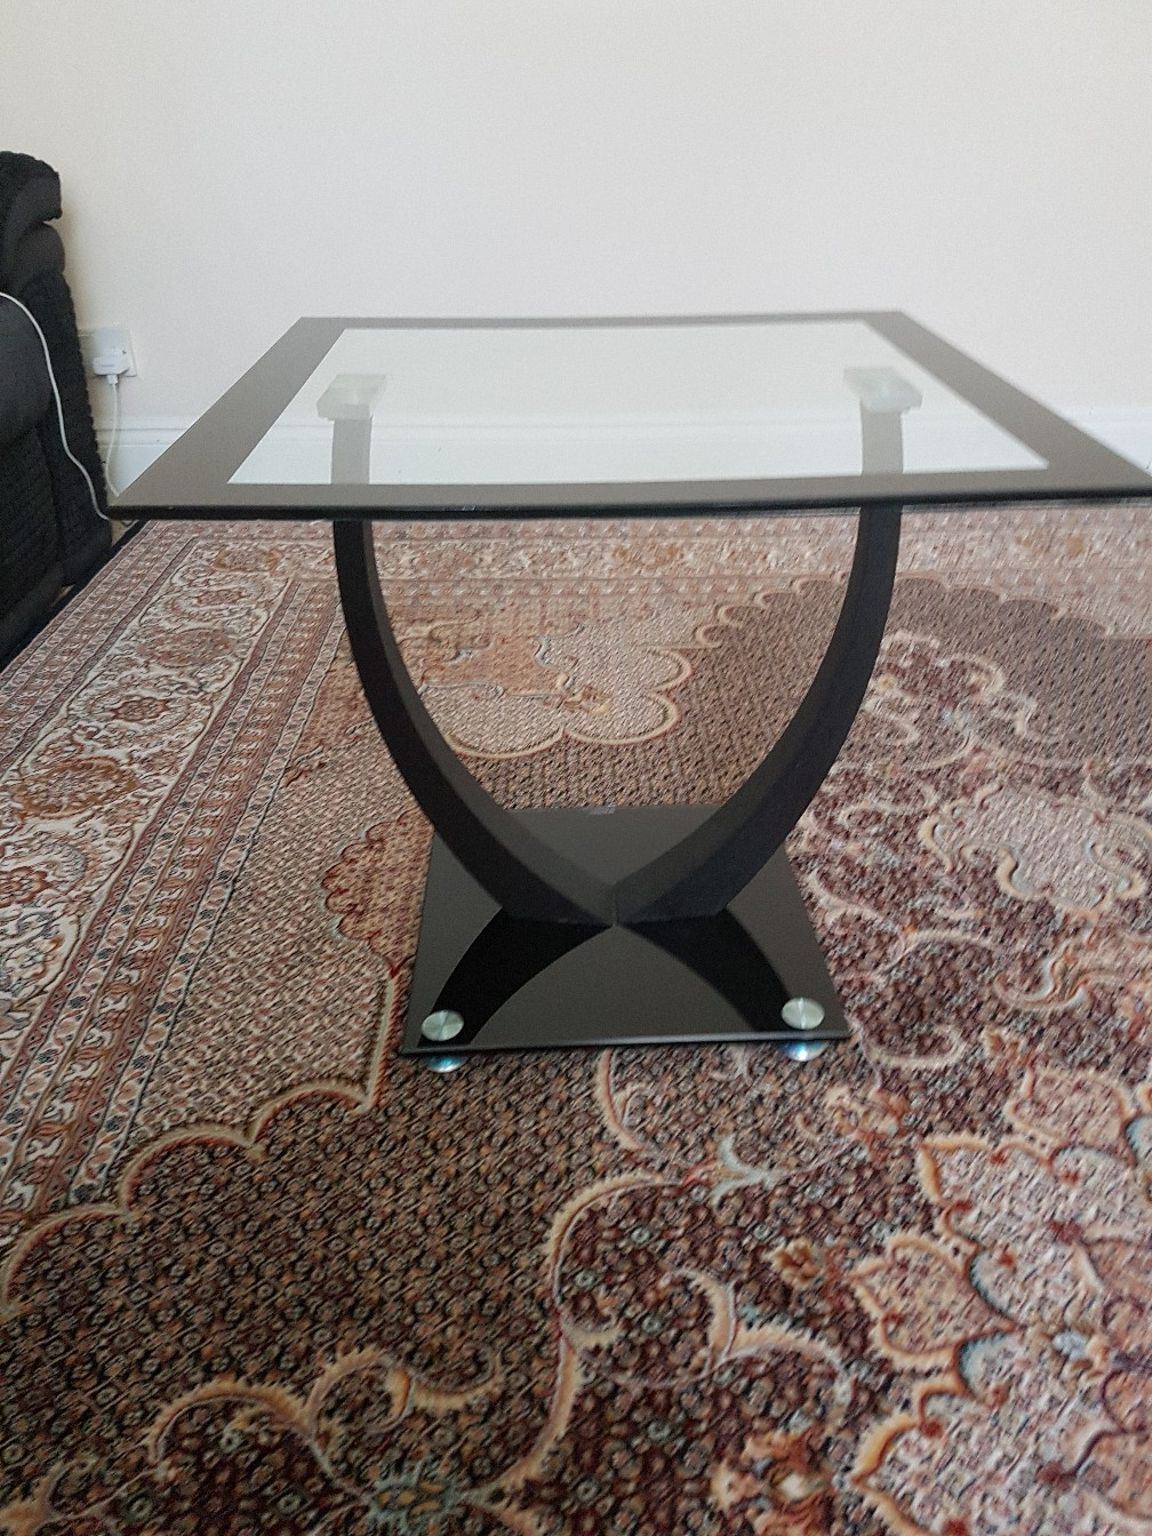 shpock small coffee table size chawston oval accent kitchen dining furniture dog bath tub glass top shallow cabinet target threshold mirror little lamps silver lampshade modern